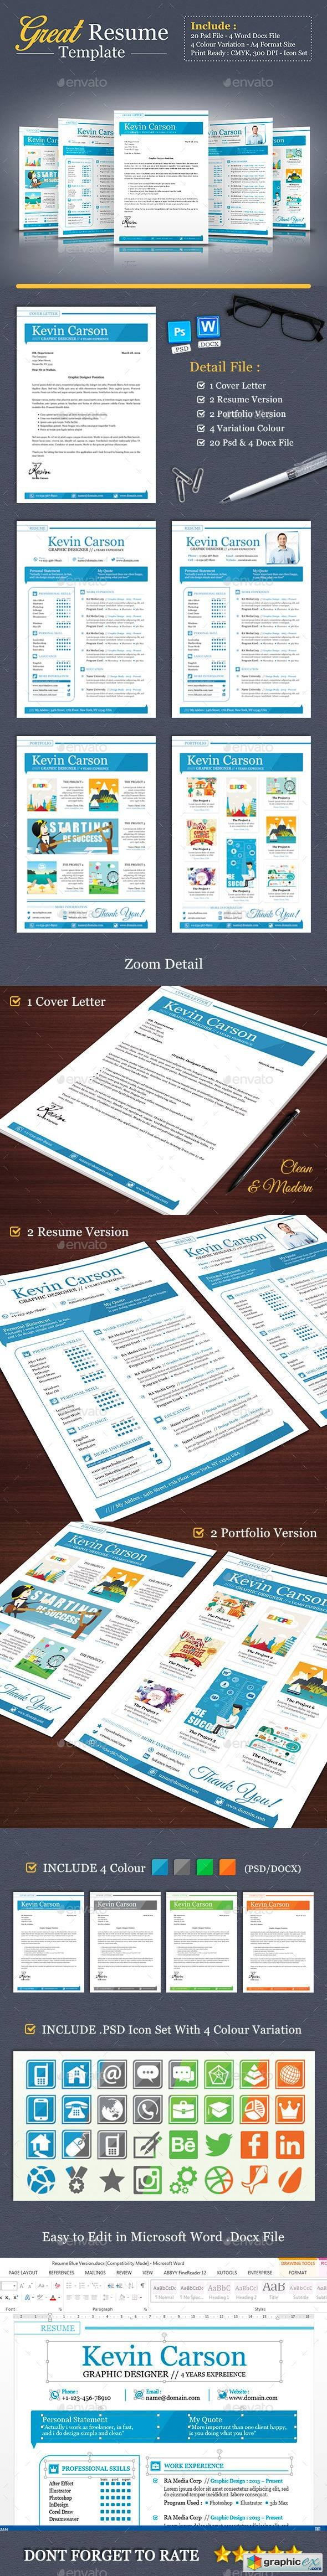 Great Resume/CV